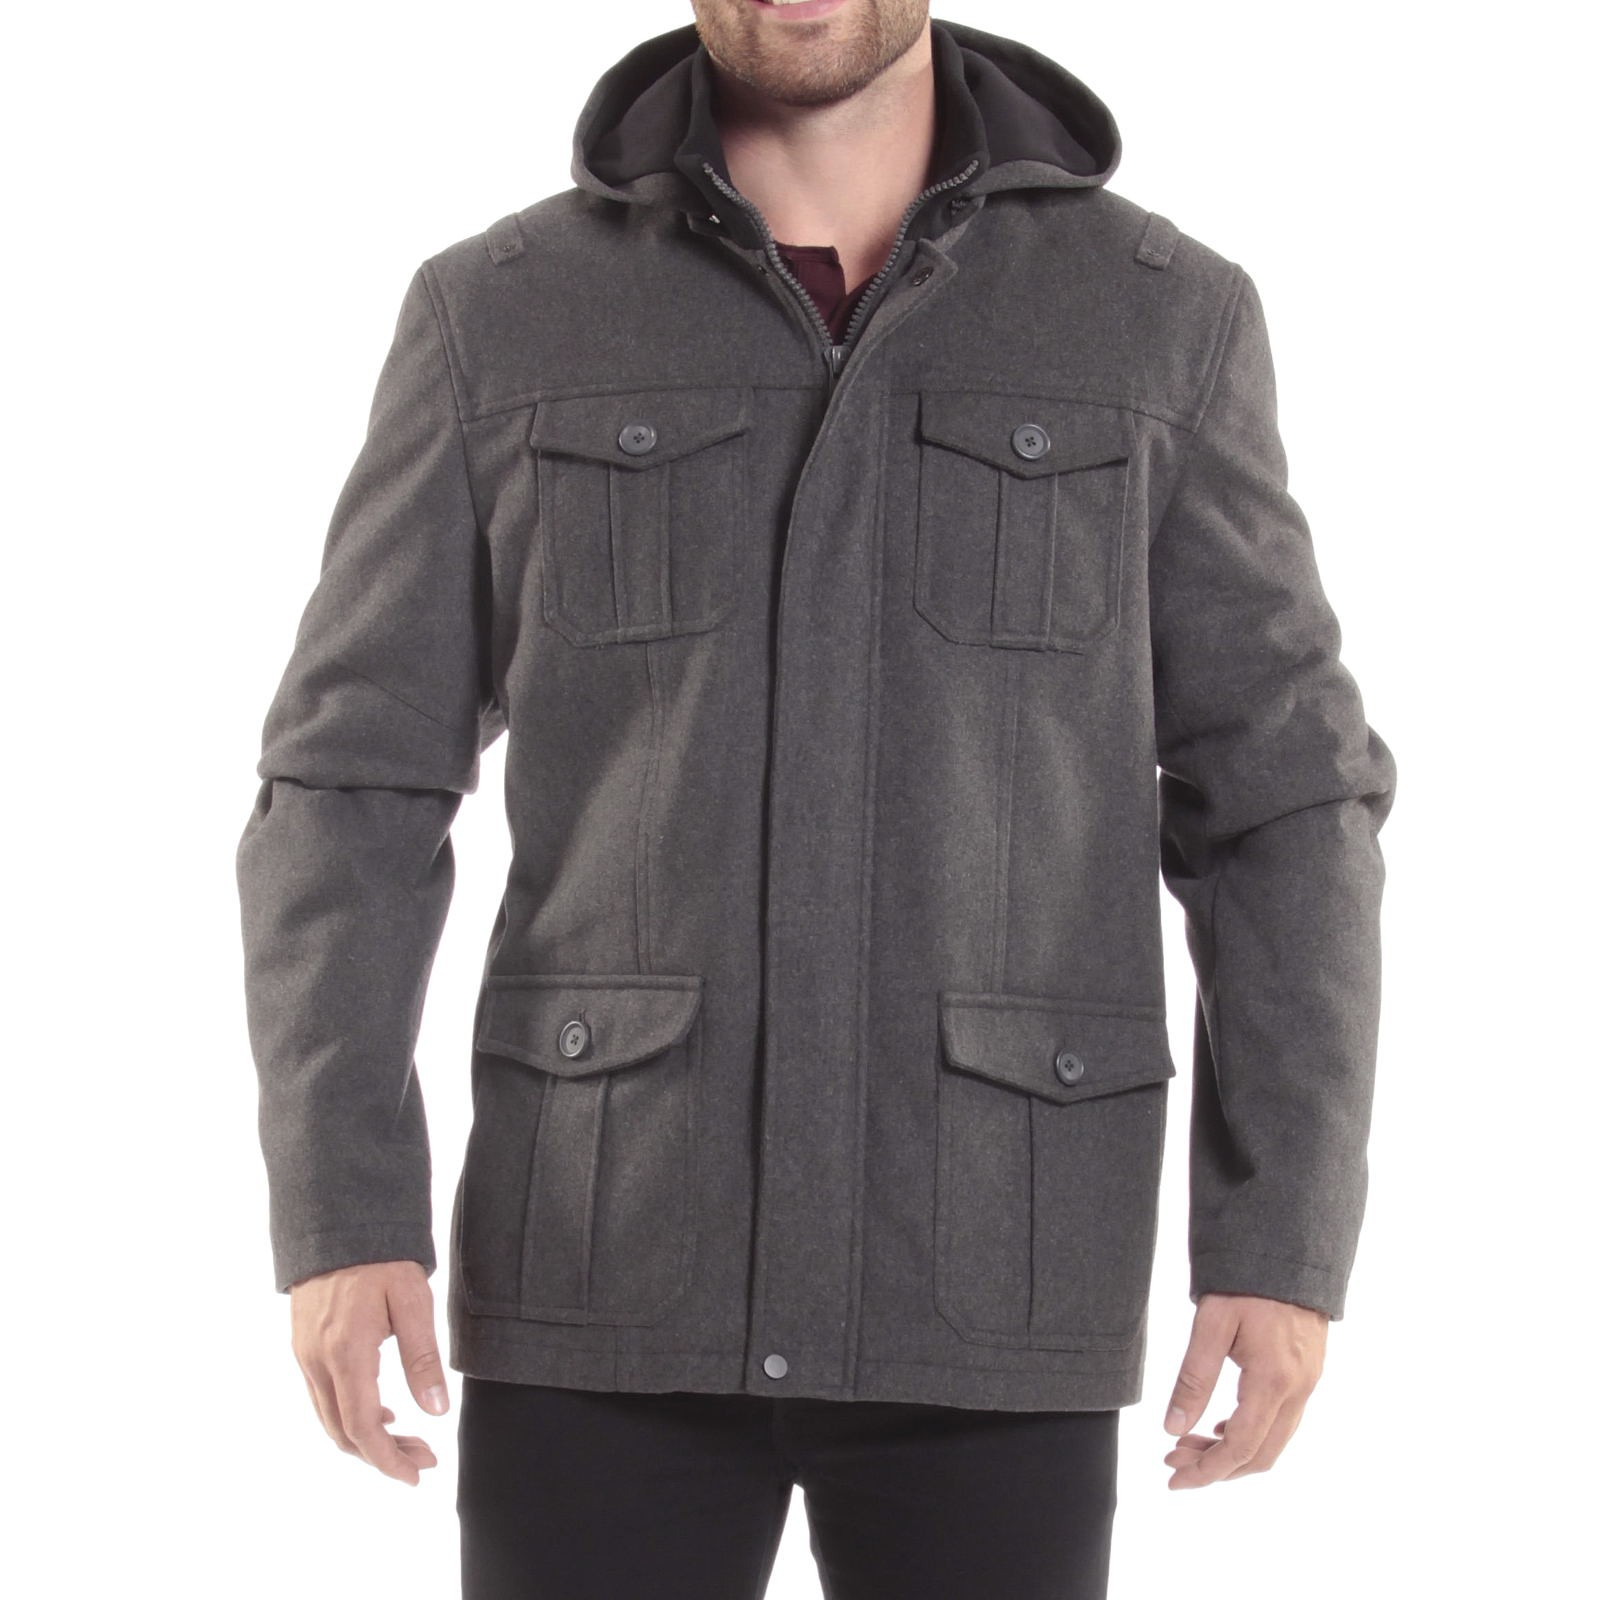 Alpine-Swiss-Noah-Mens-Wool-Coat-Parka-with-Removable-Hood-Jacket-Cargo-Pockets thumbnail 35